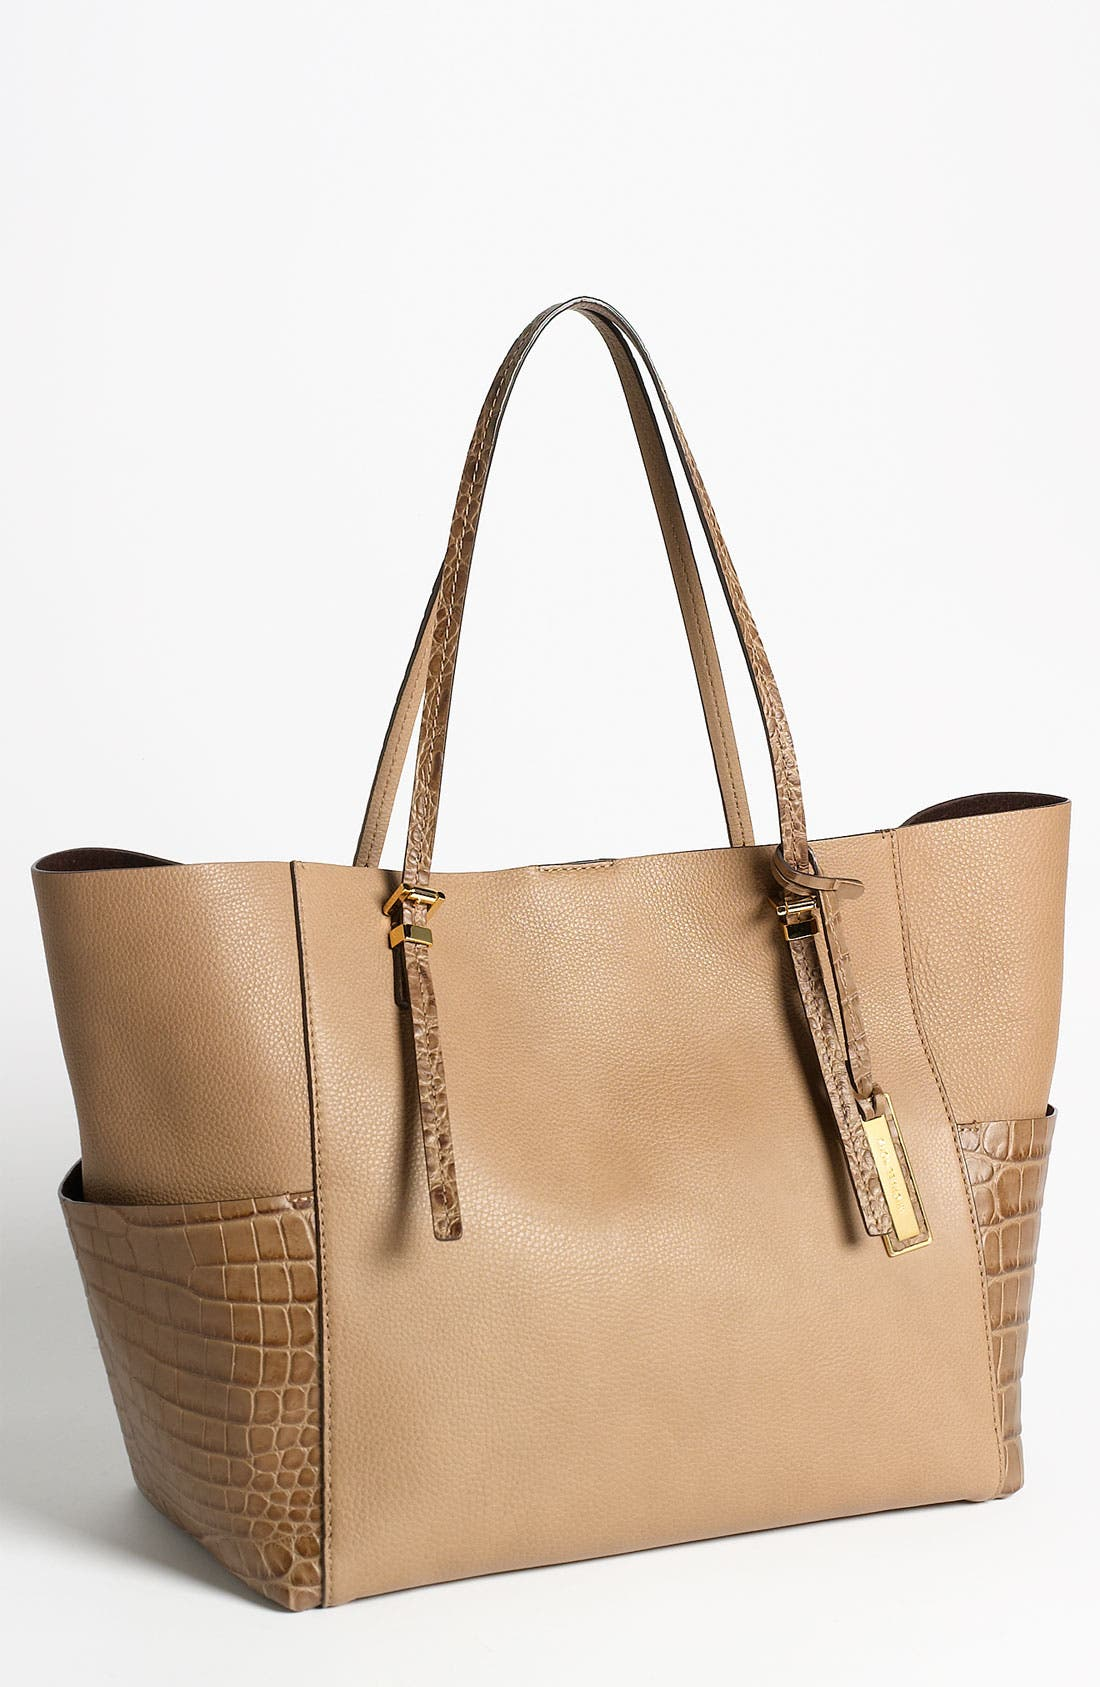 Alternate Image 1 Selected - Michael Kors Leather Tote